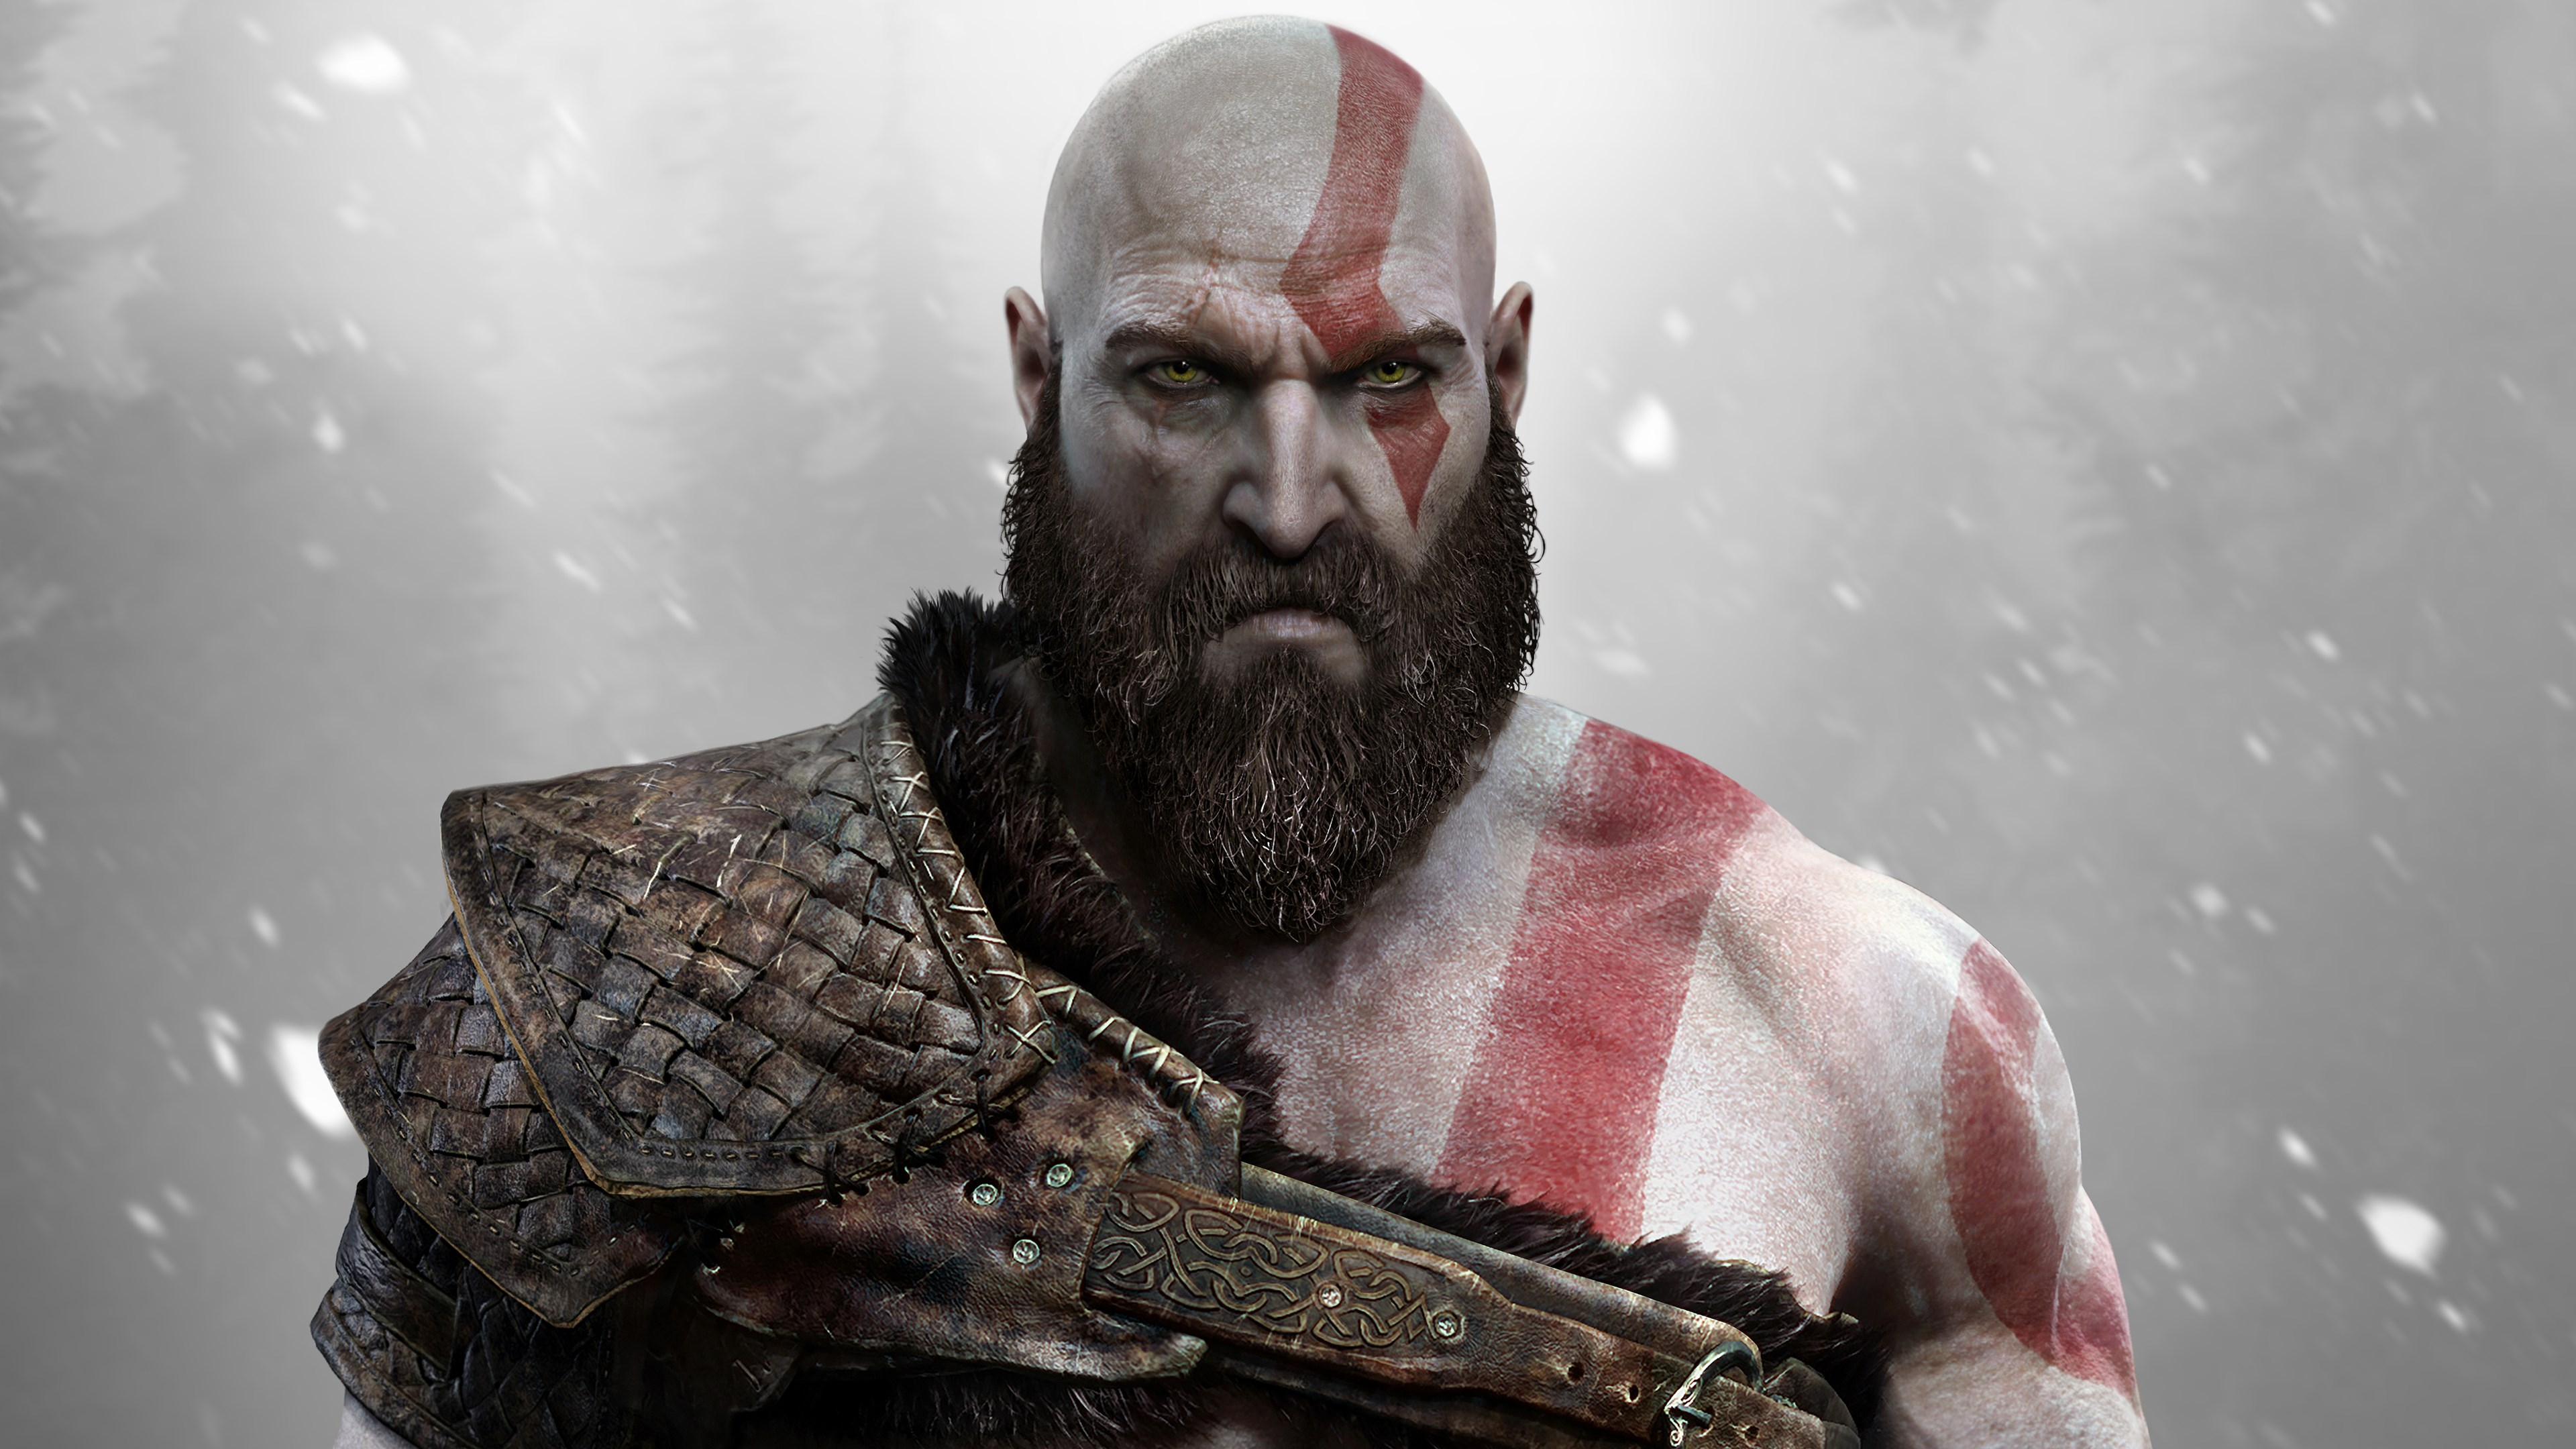 God Of War 2017 4k Ultra Hd Wallpaper High Quality Walls